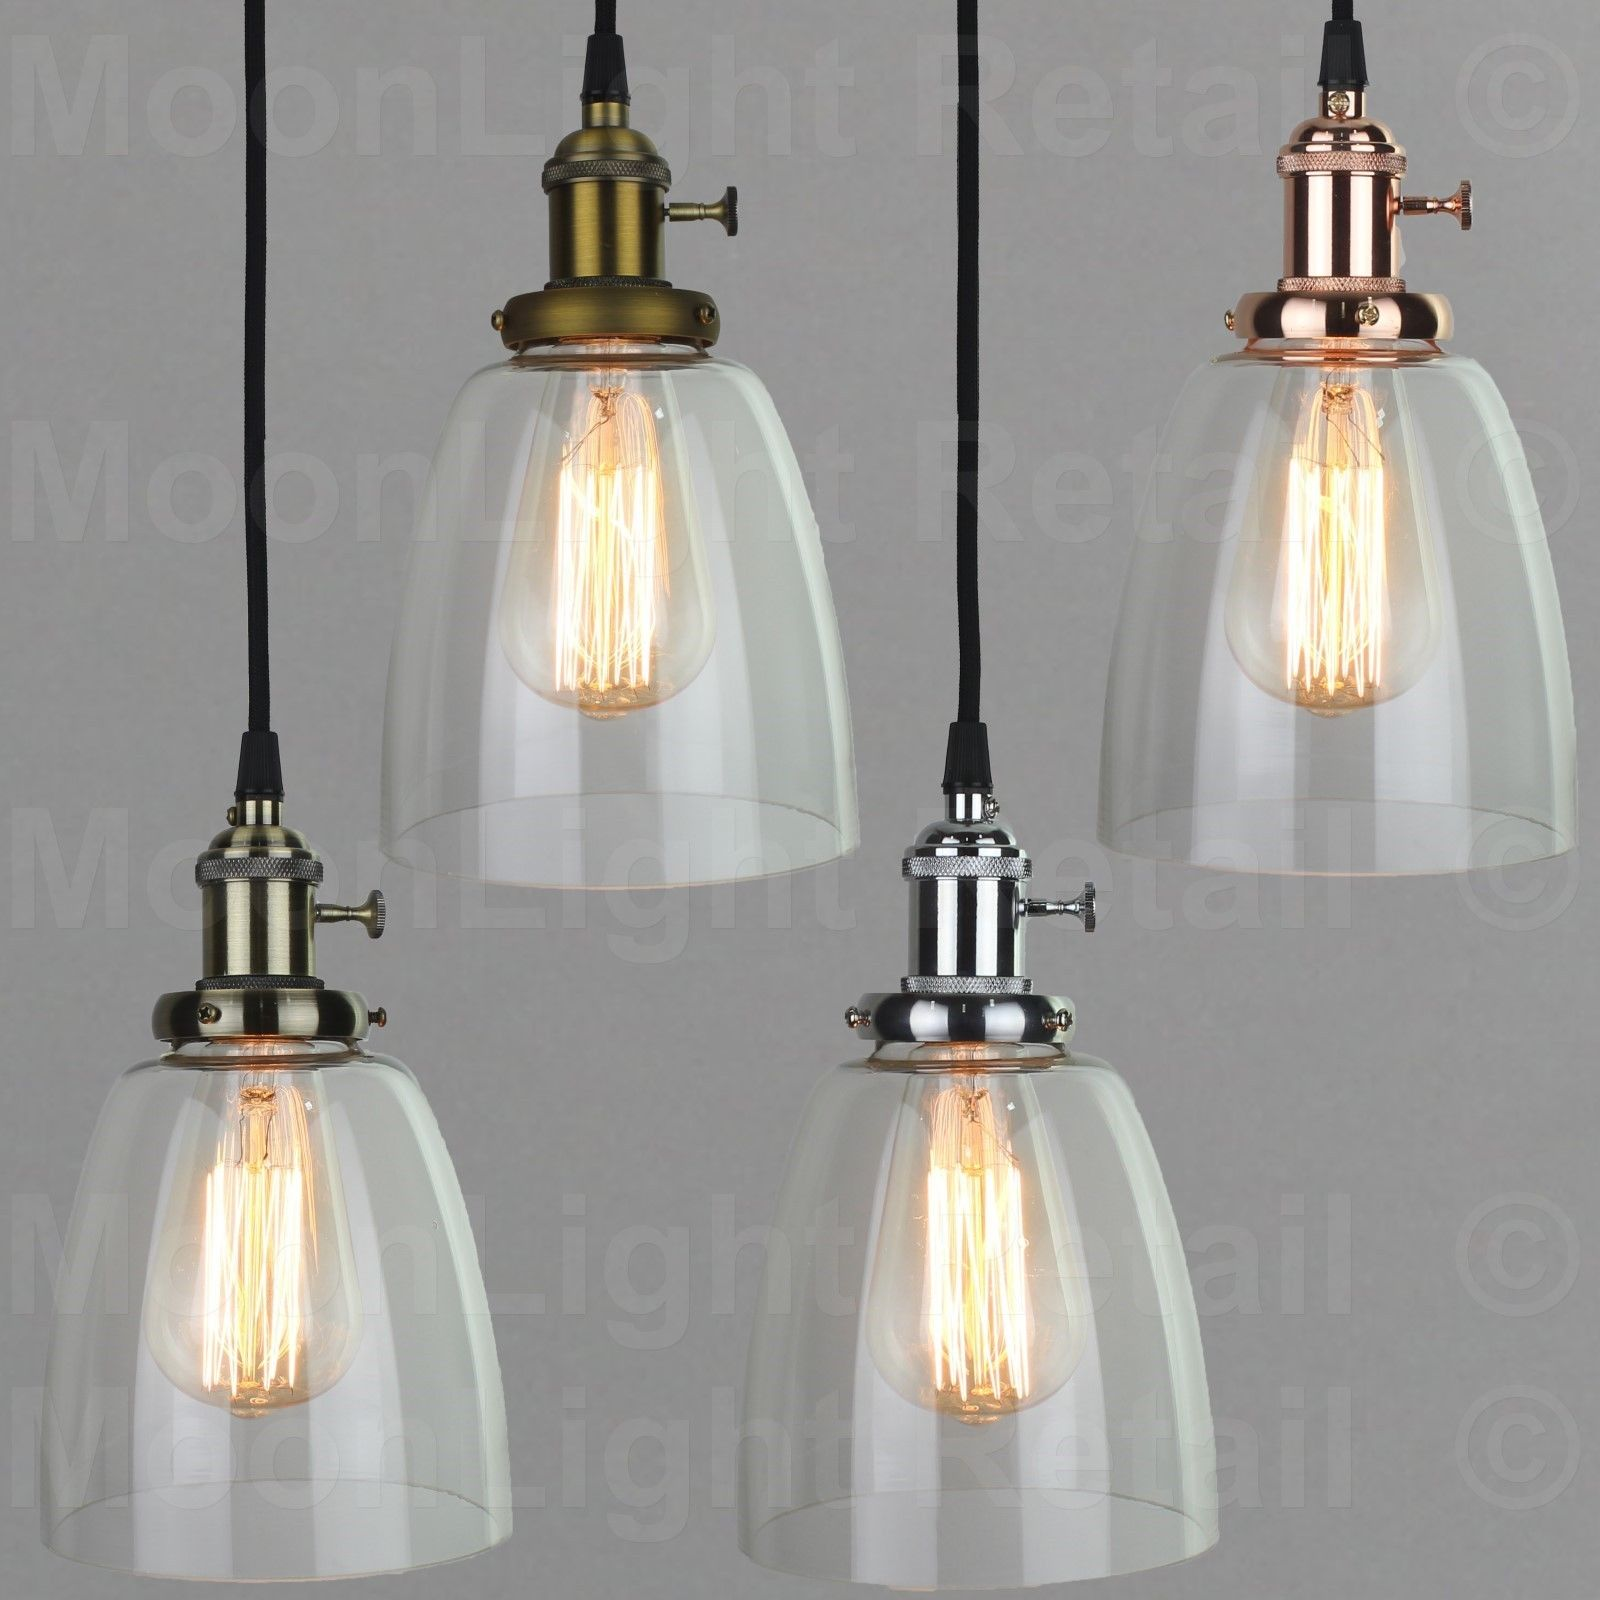 Vintage industrial ceiling lamp cafe glass pendant light shade vintage industrial ceiling lamp mozeypictures Image collections